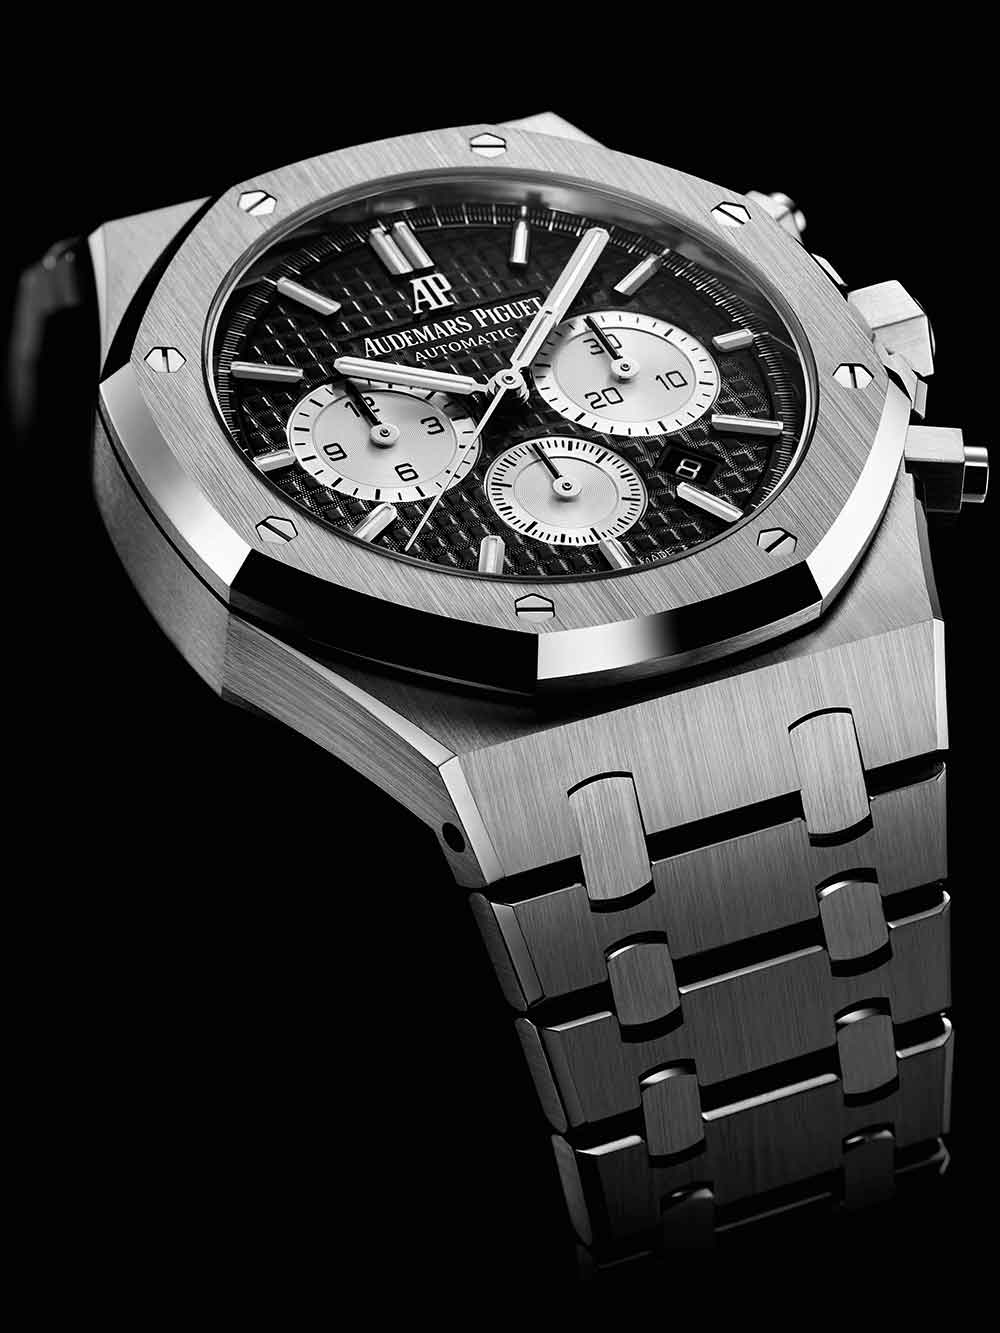 Audemars Piguet Royal Oak Chronograph RO.26331ST.OO.1220ST.02